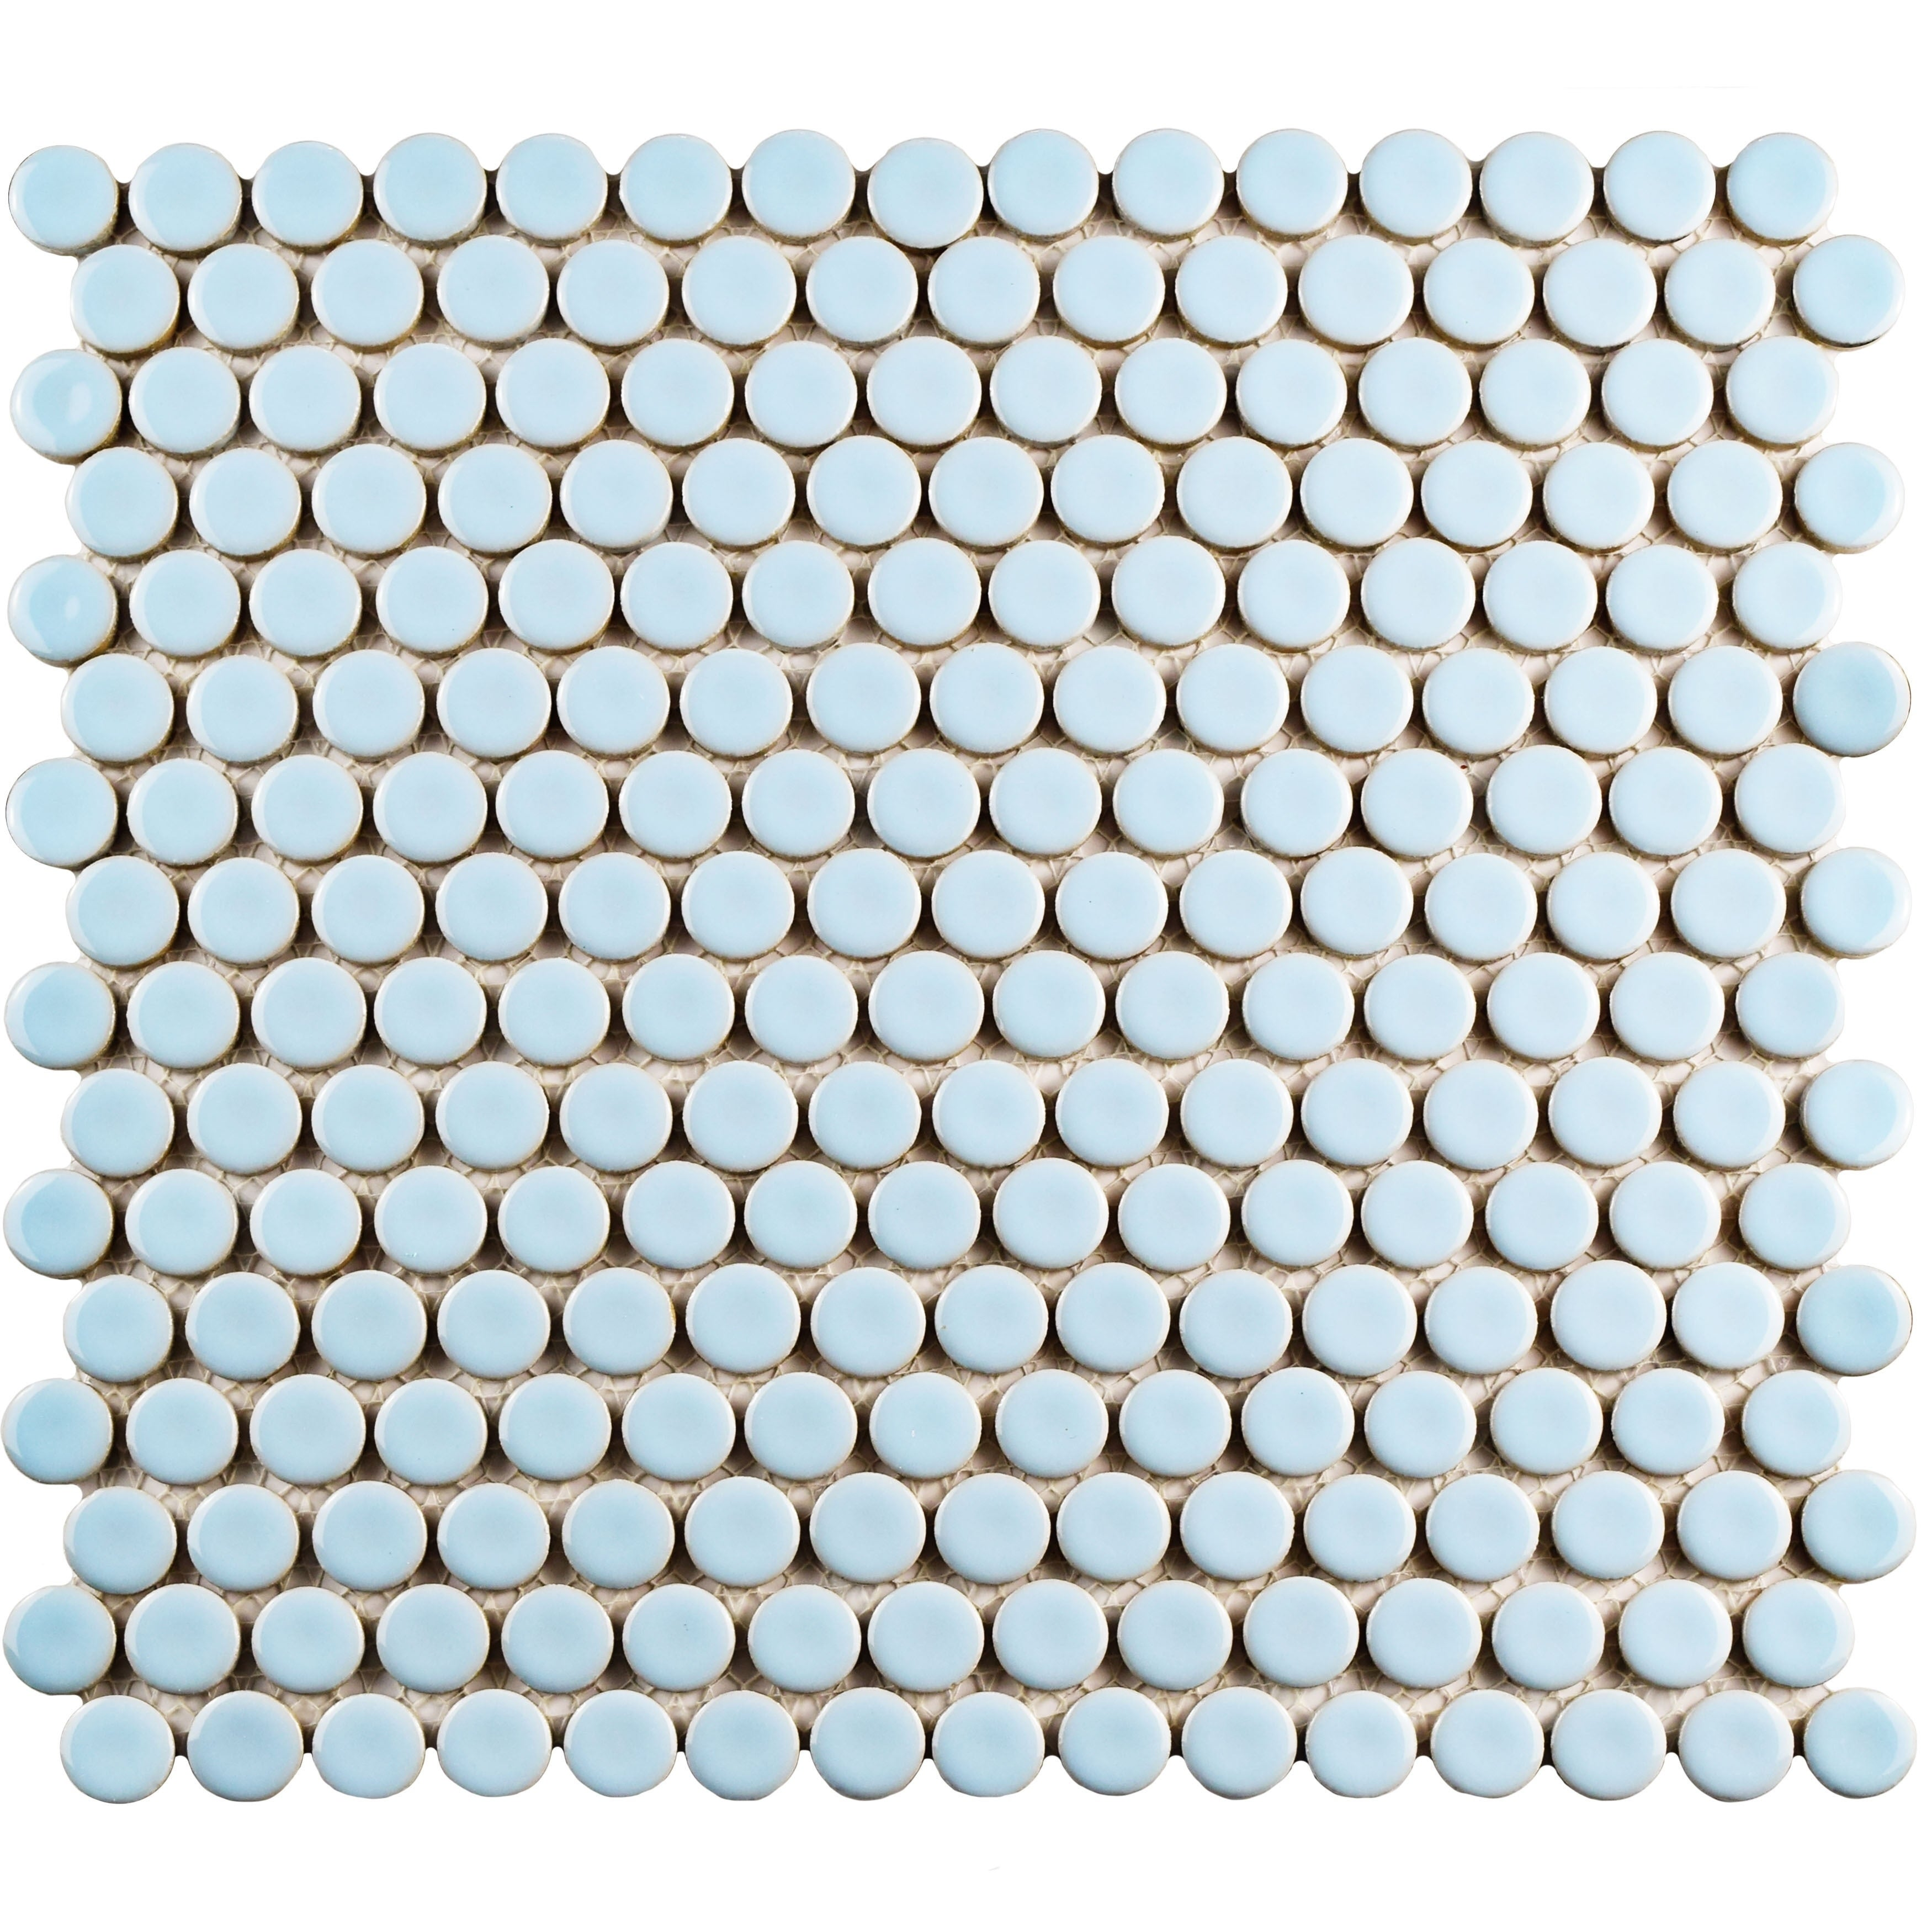 Somertile 12 x 12.625-inch Penny Cashmere Blue Porcelain ...